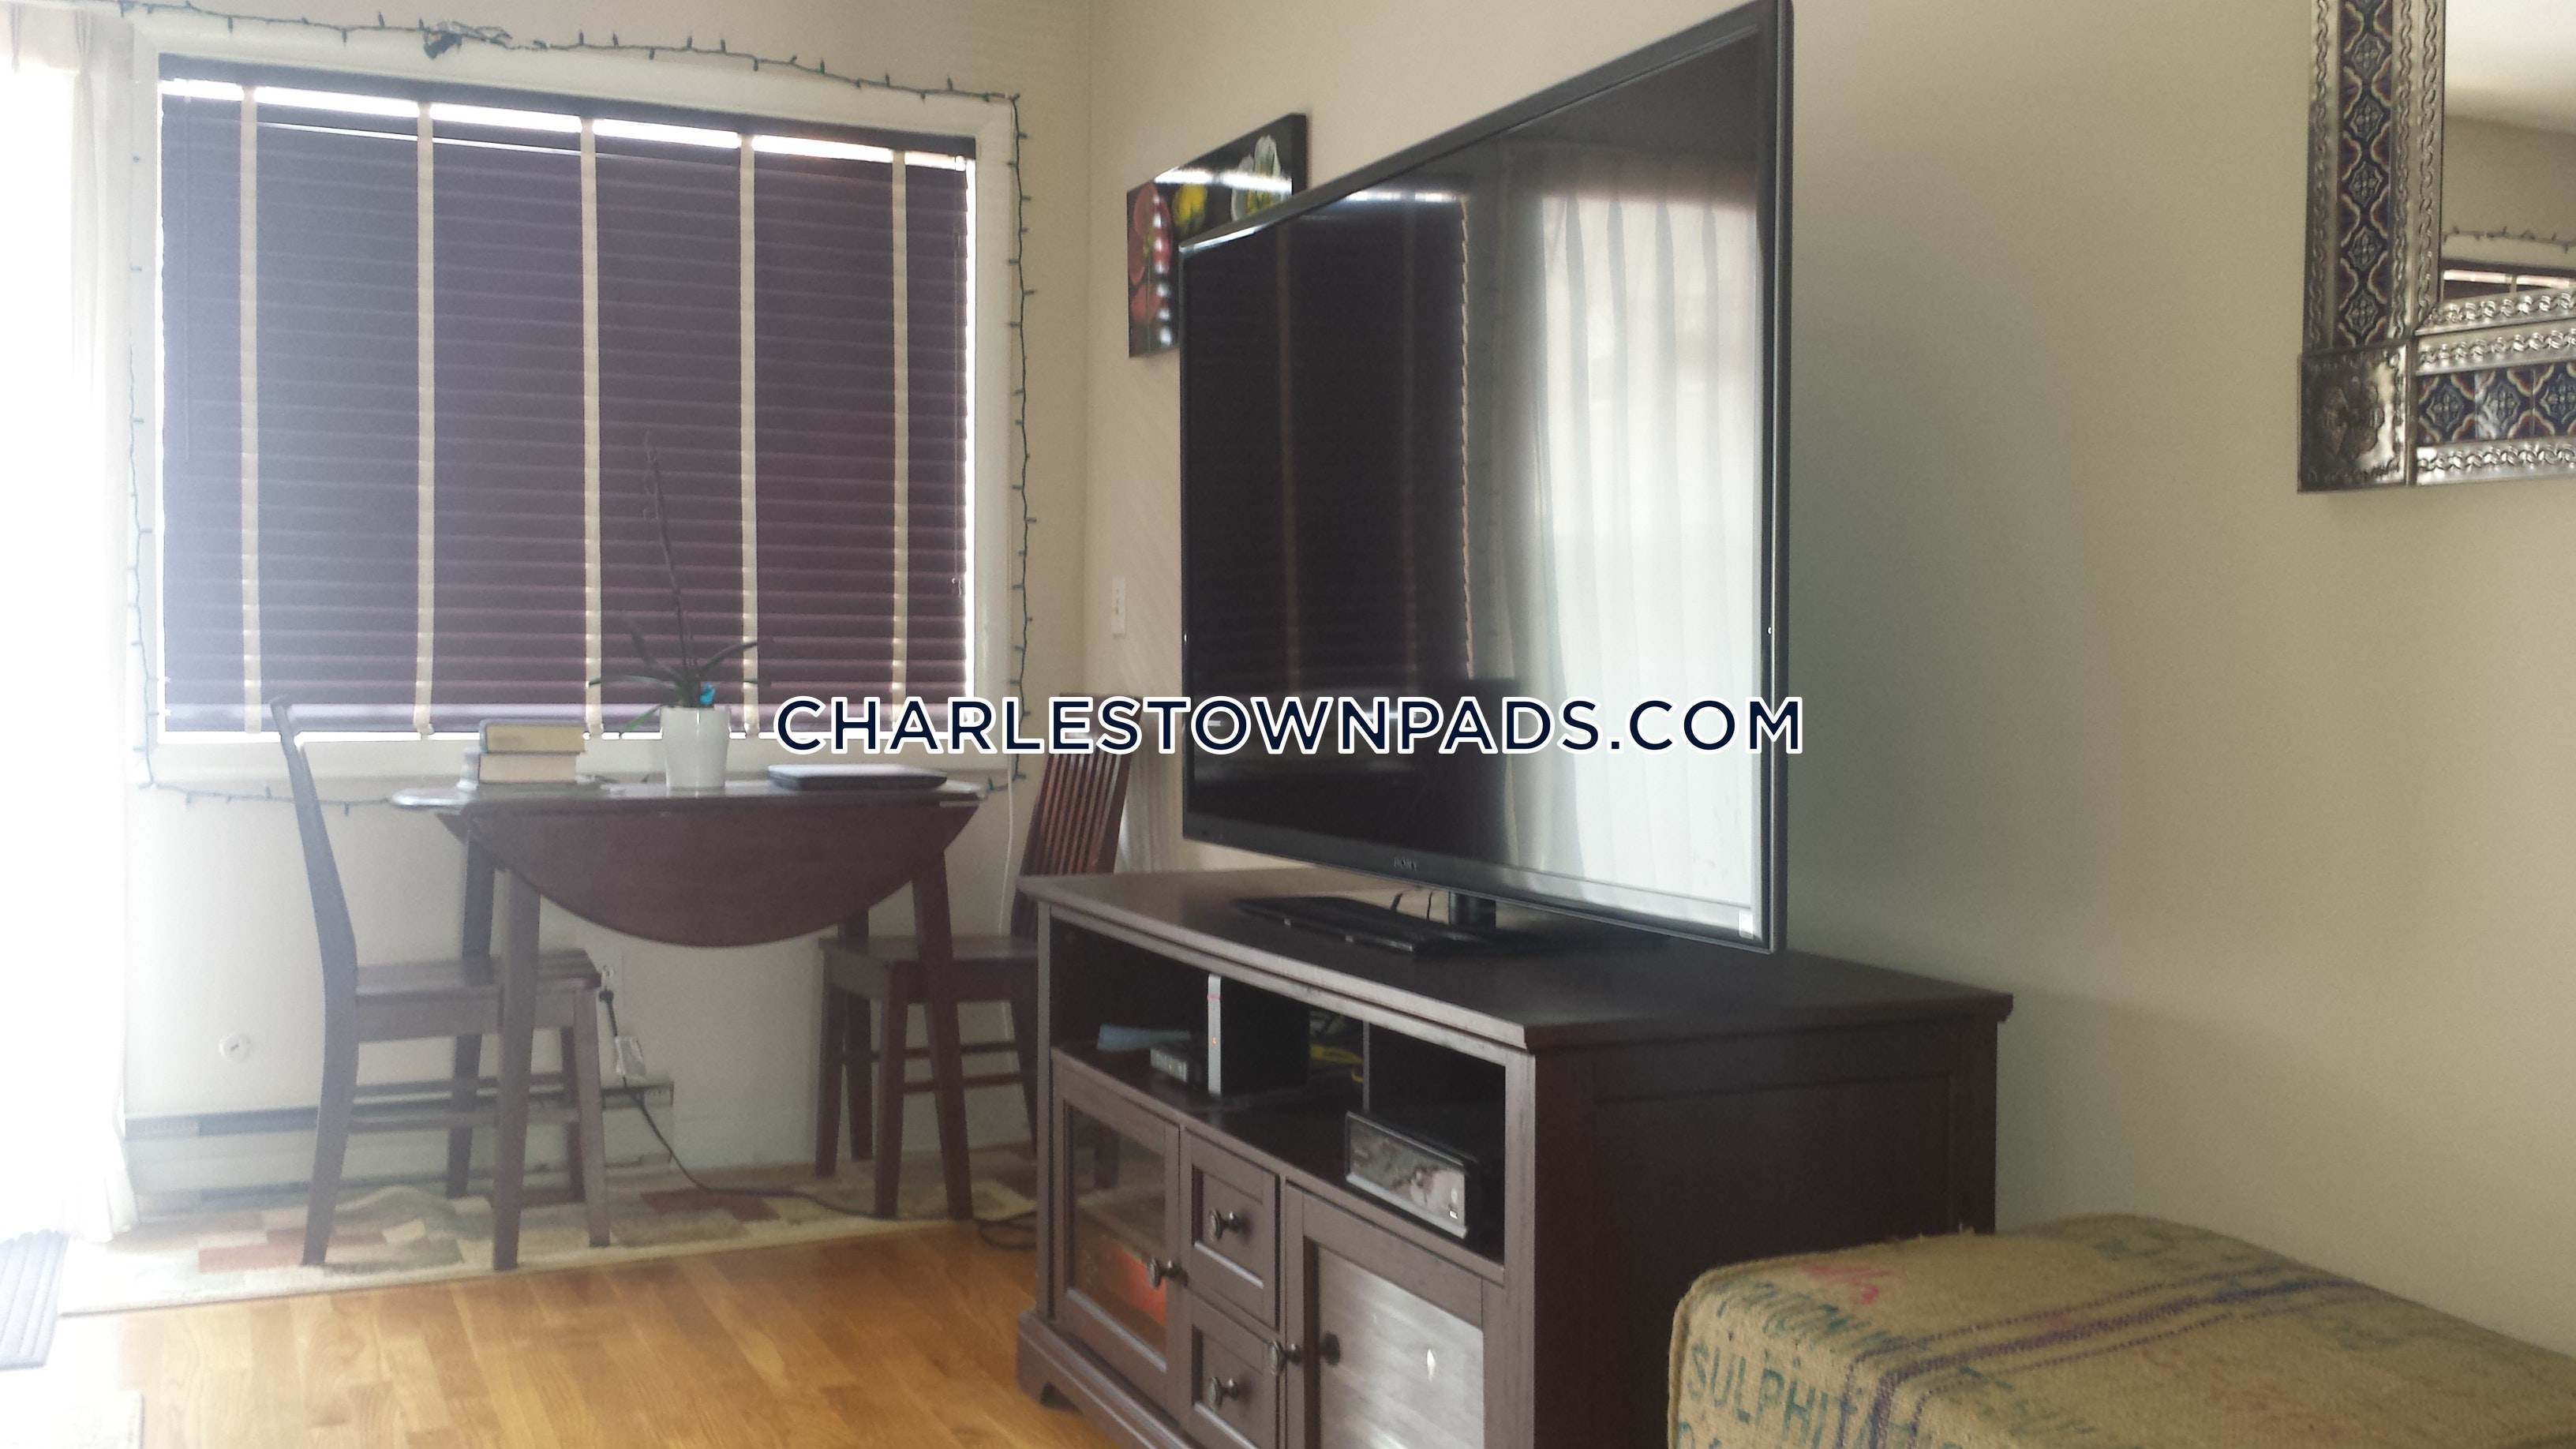 2 Beds 1.5 Baths - Boston - Charlestown $3,000